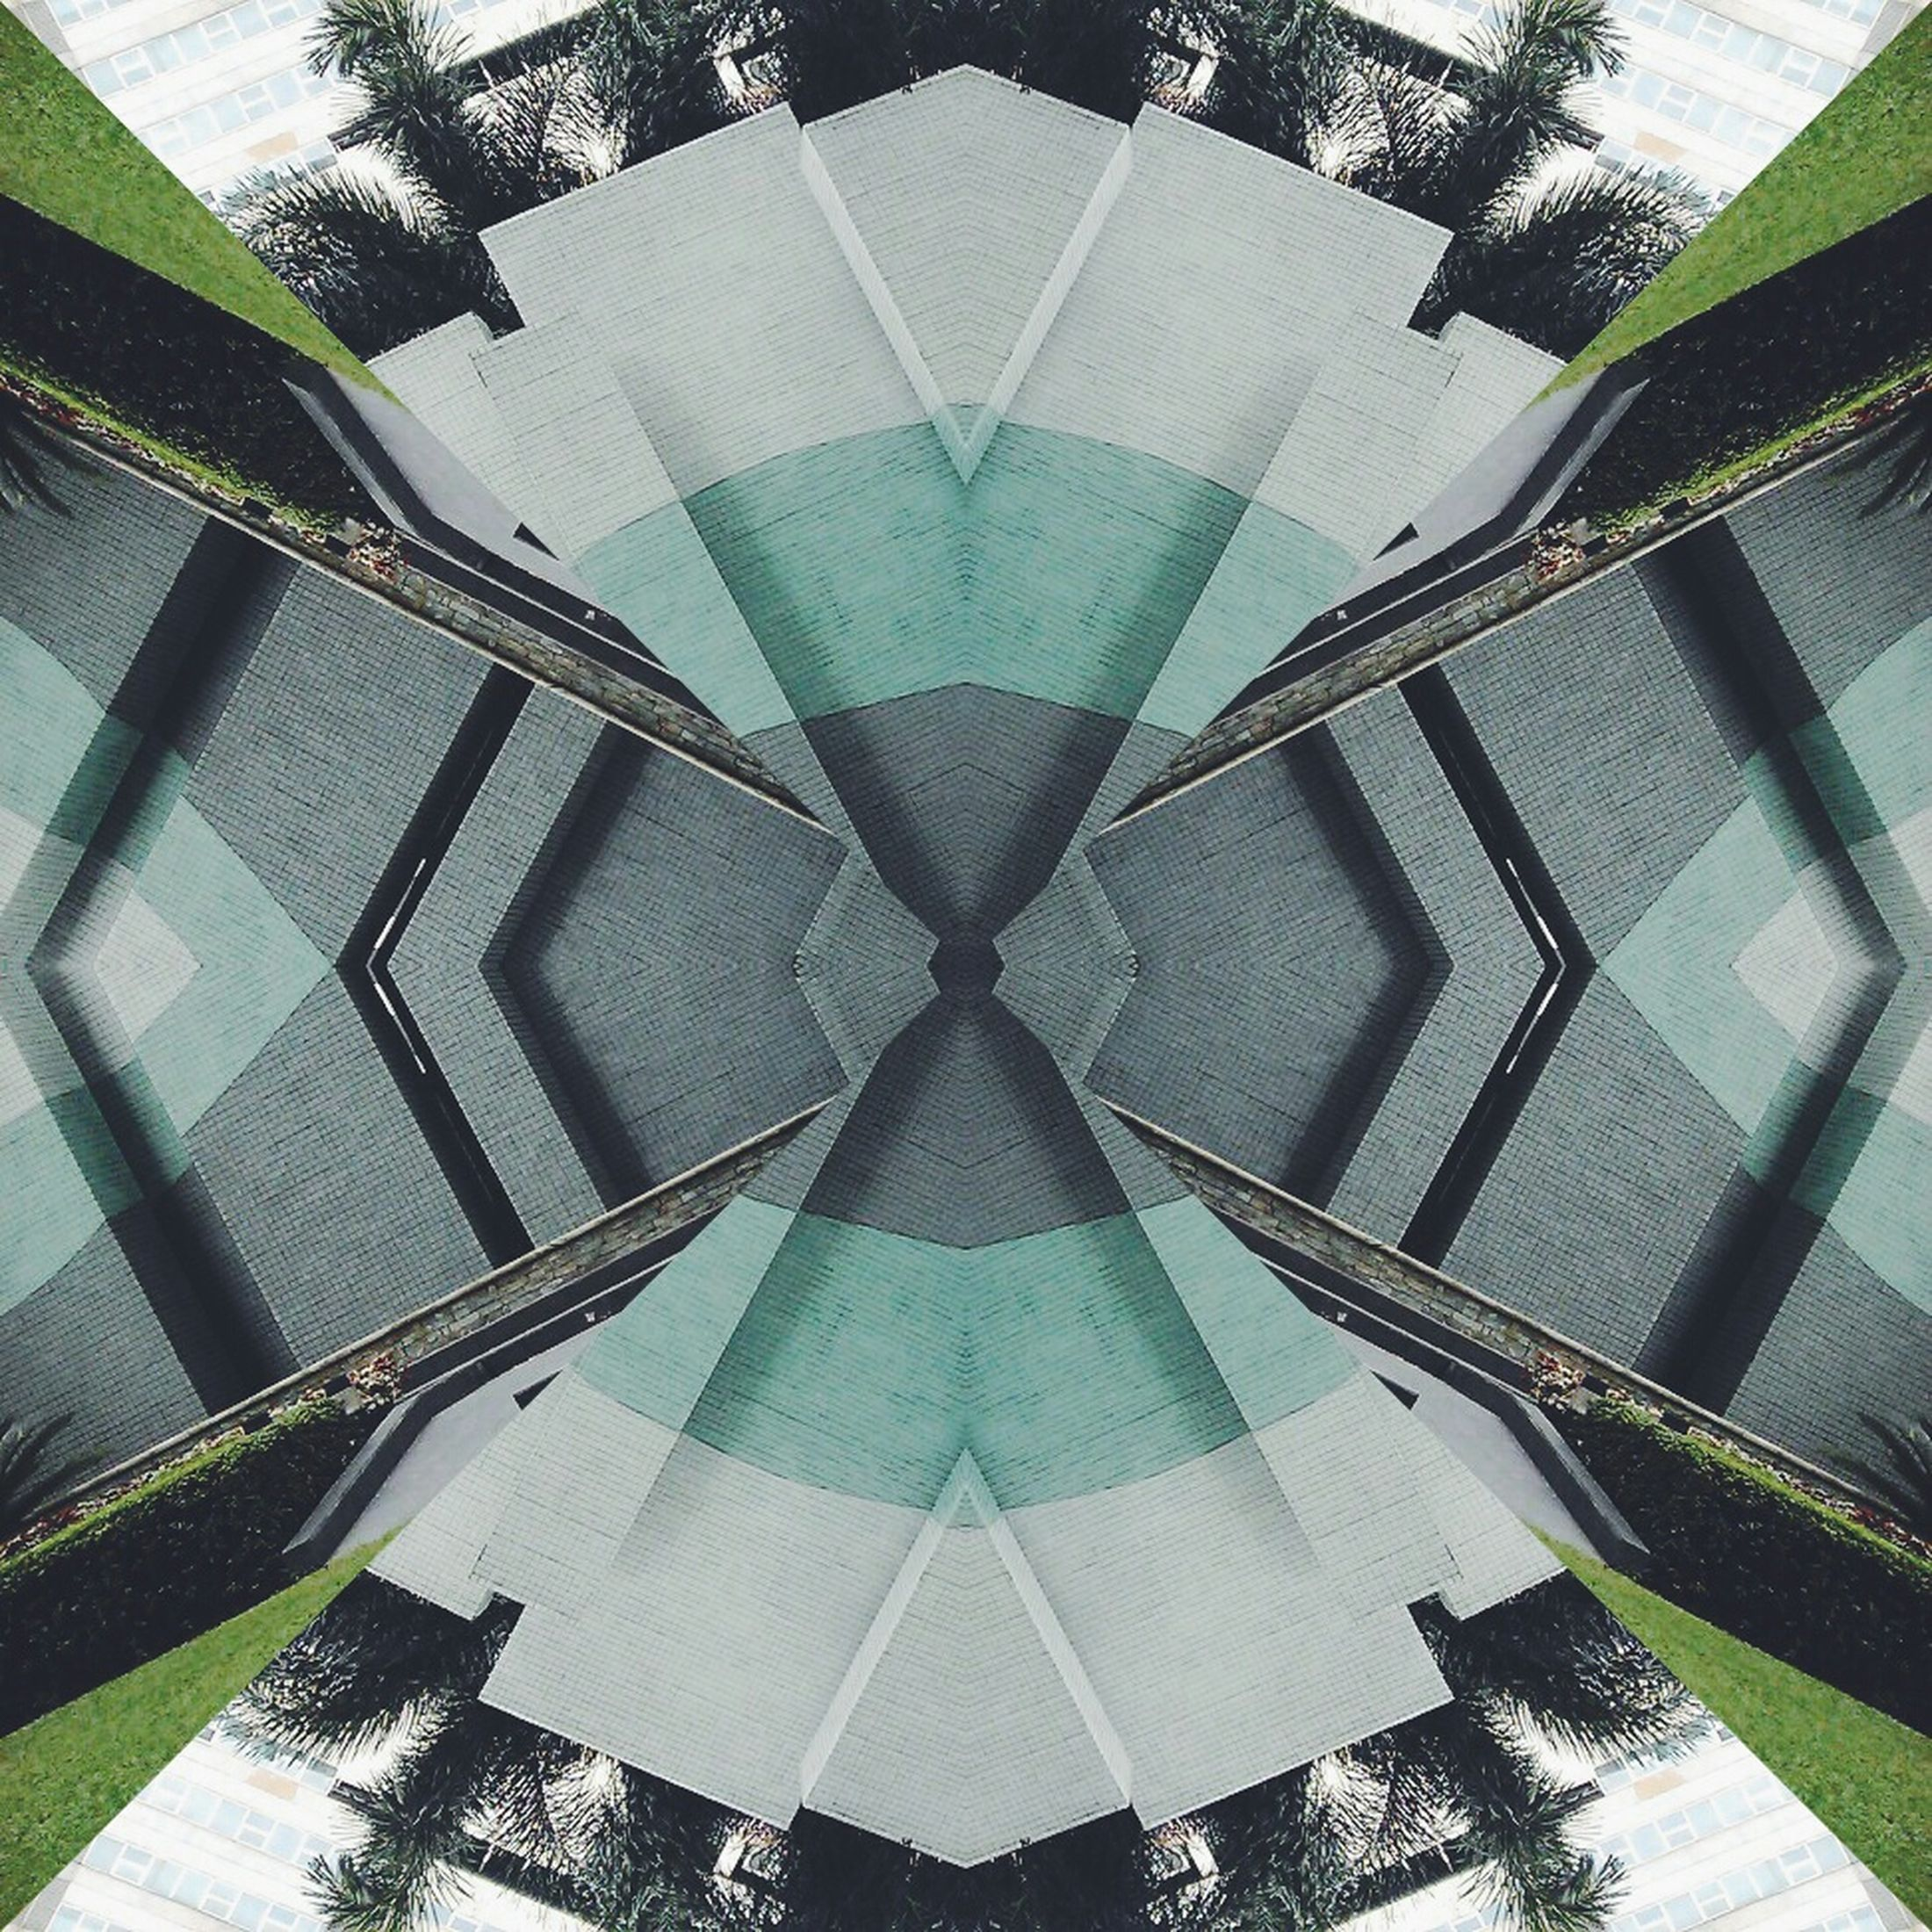 Because I miss Mirrorgram (now SparkMode) and it's taking too long to come to Android. 23JANMMXV Mirrorgram D3lta Park Symmetry Urban Geometry